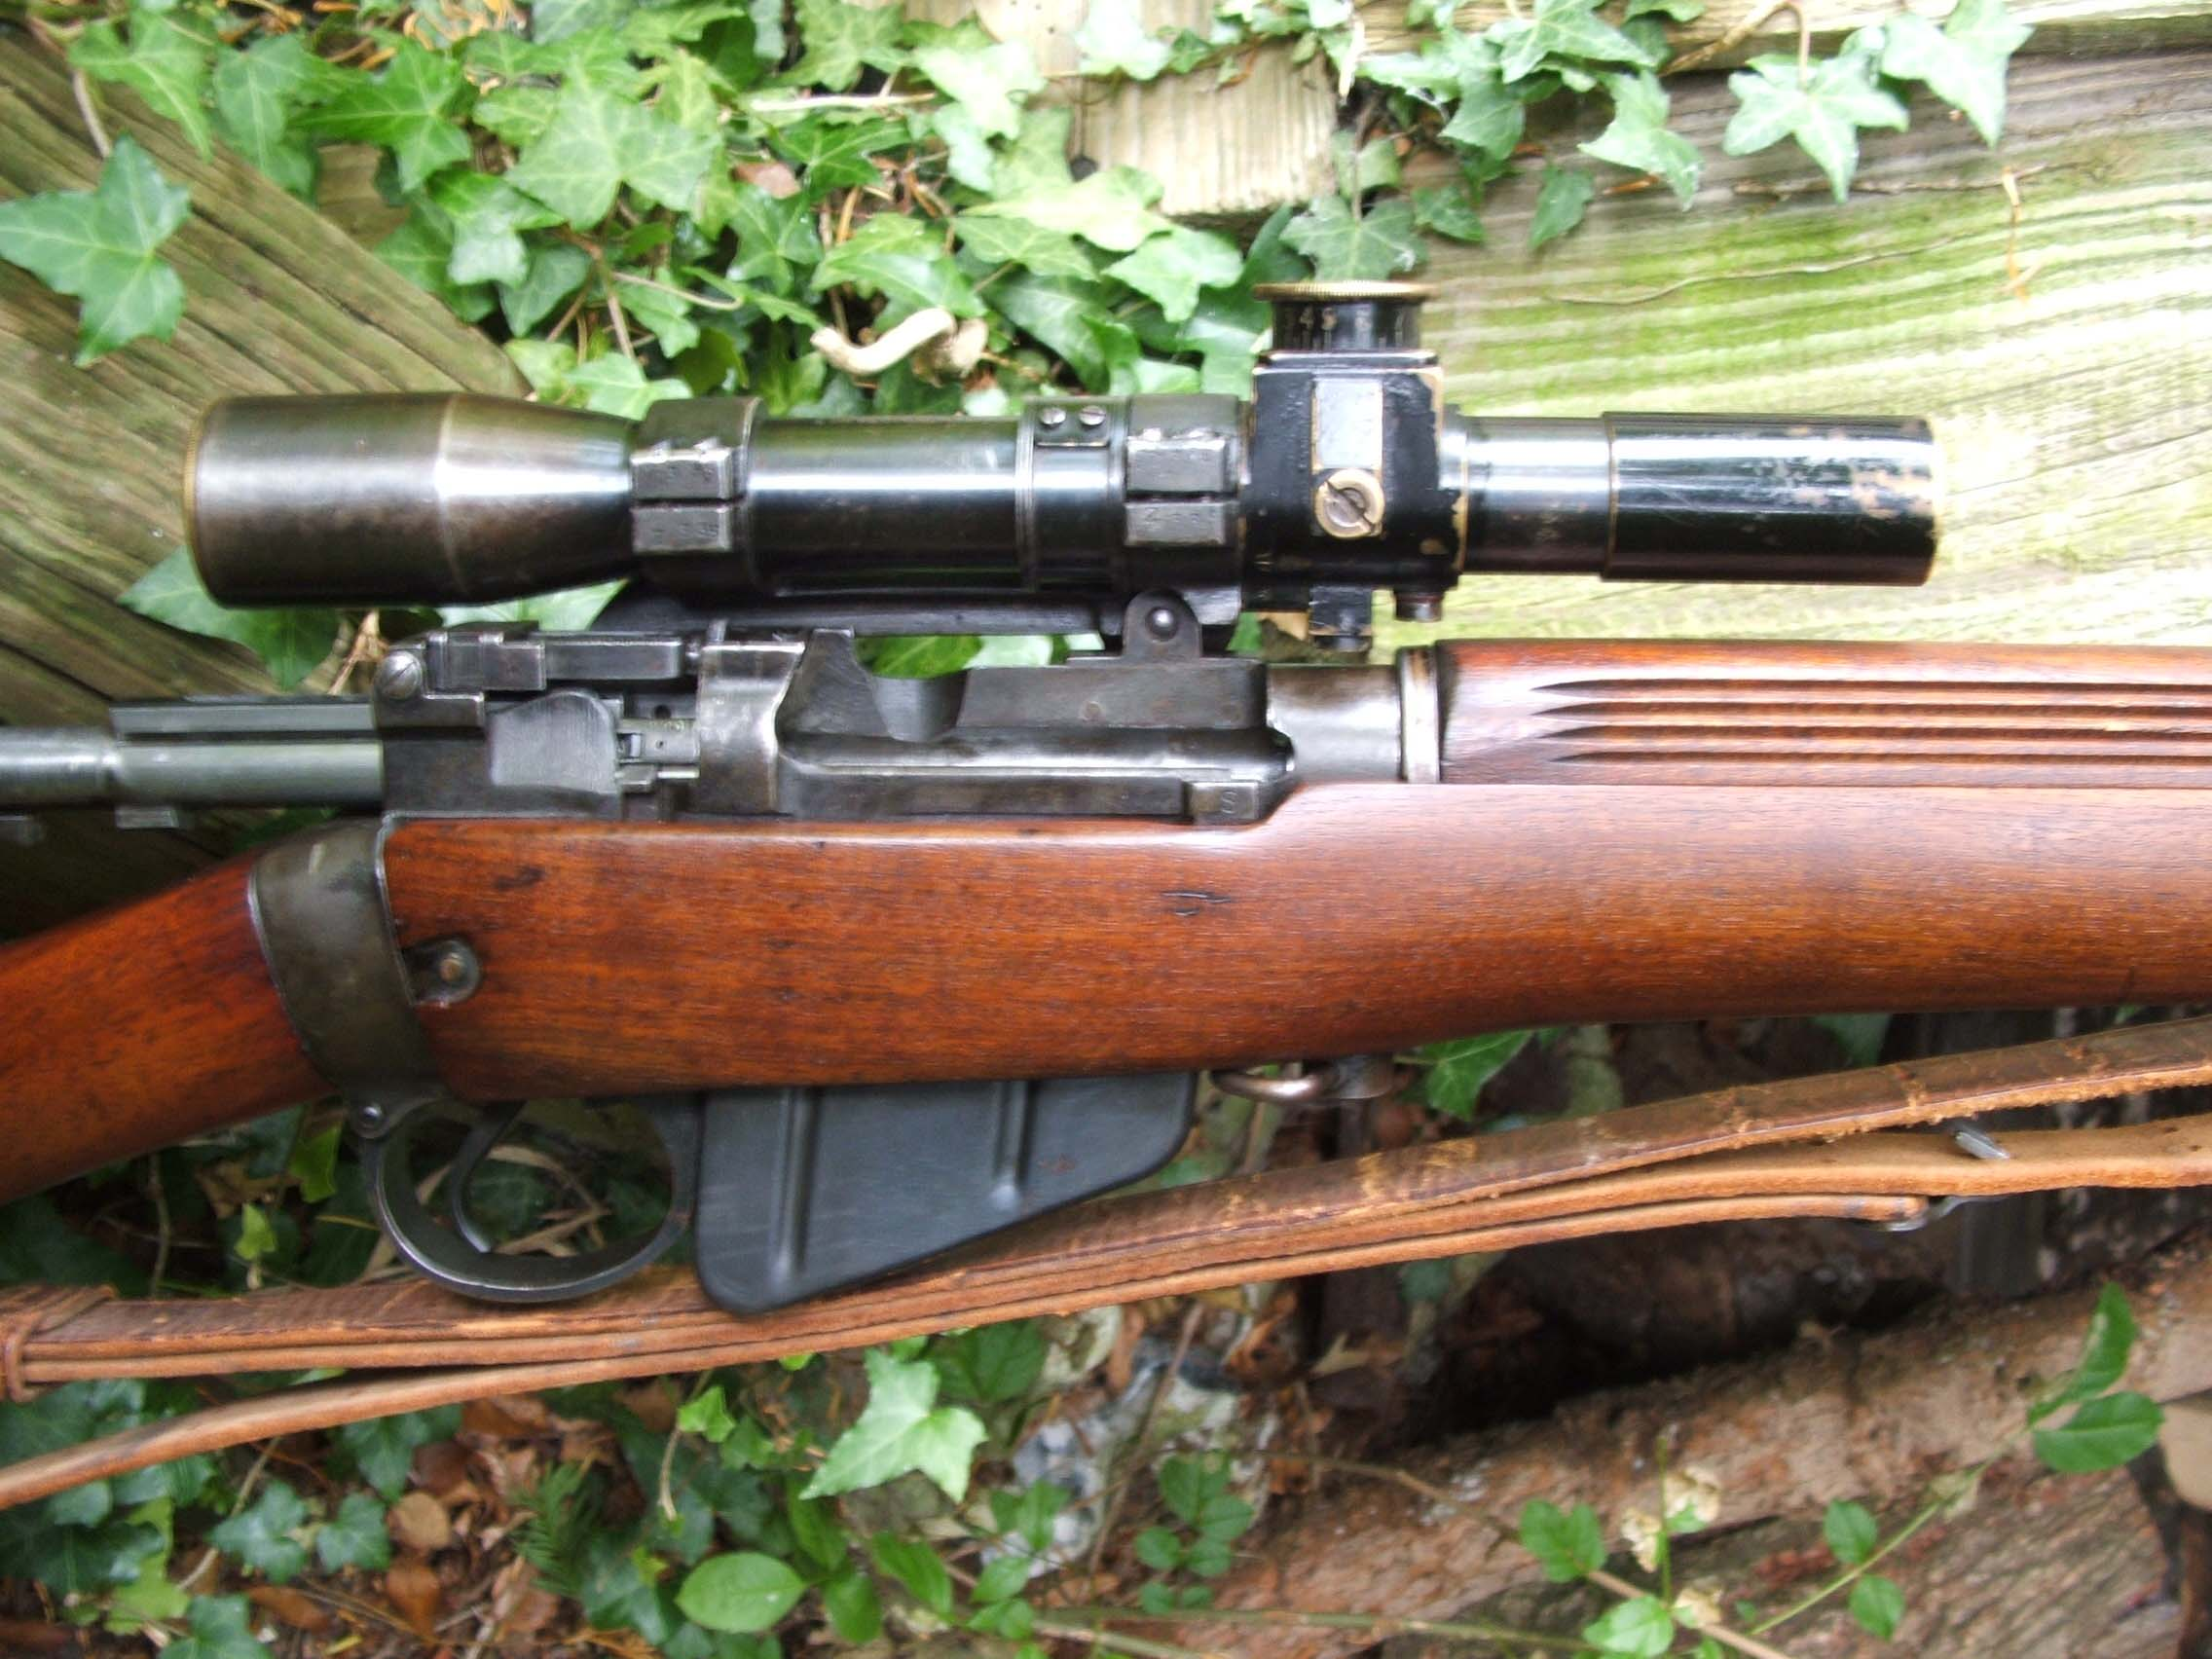 303 British Sniper Rifles http://www.byswordandmusket.co.uk/past-sales/rifles-requiring-a-firearms-license/british-rifles-sold/303-no-4-t-sniper-rifle/